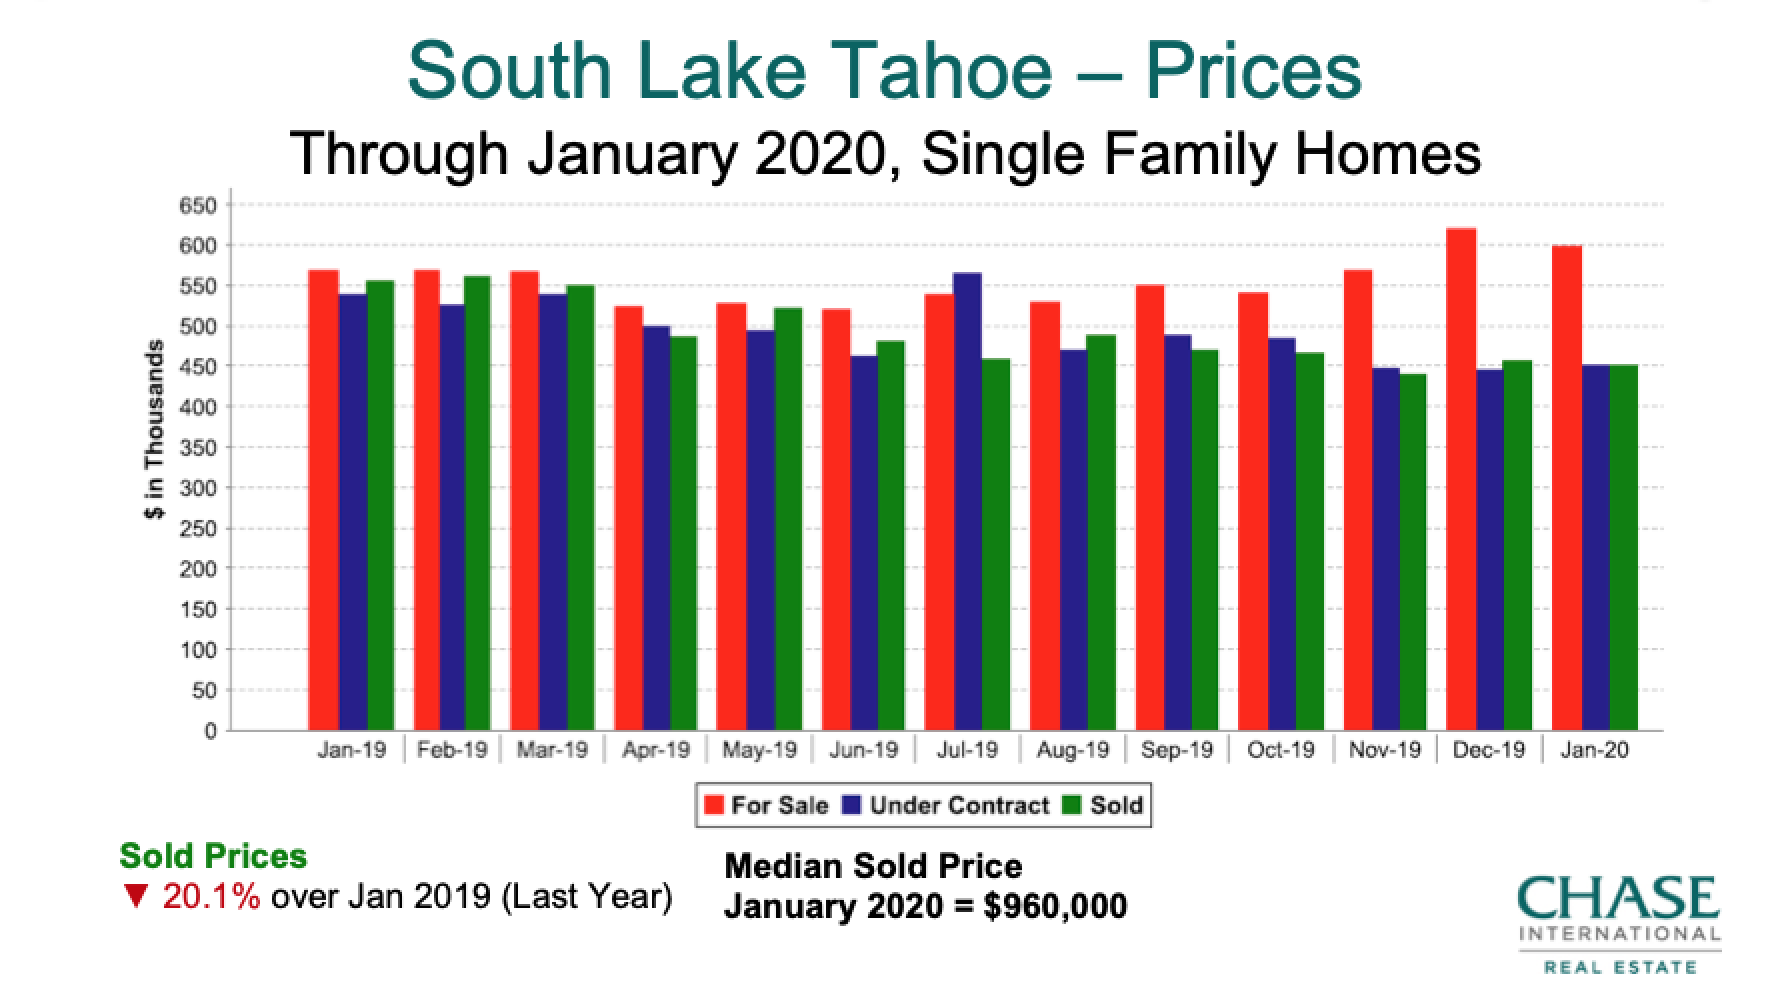 South Lake Tahoe Home Prices 2019 - January 2020